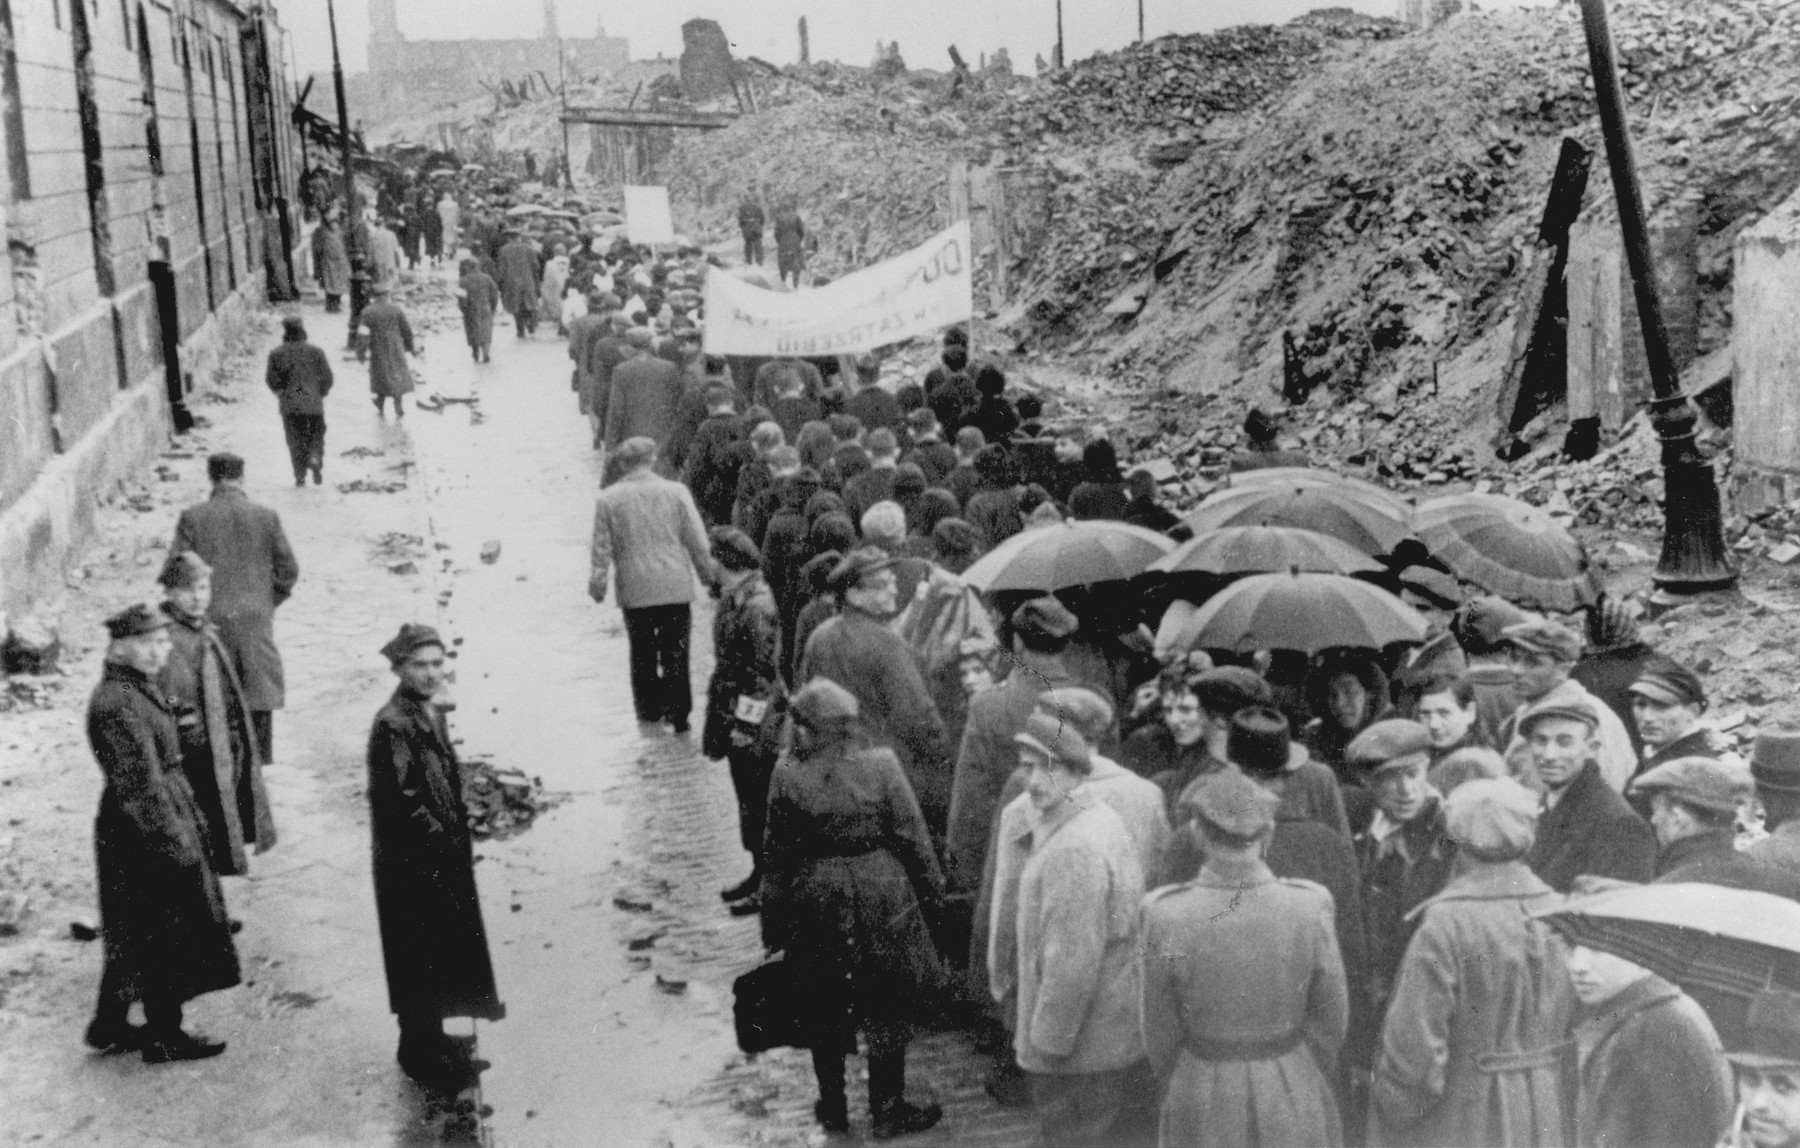 A group of Jewish survivors marches through the ruins of the Warsaw ghetto during a demonstration [probably to mark the fourth anniversary of the Warsaw ghetto uprising].